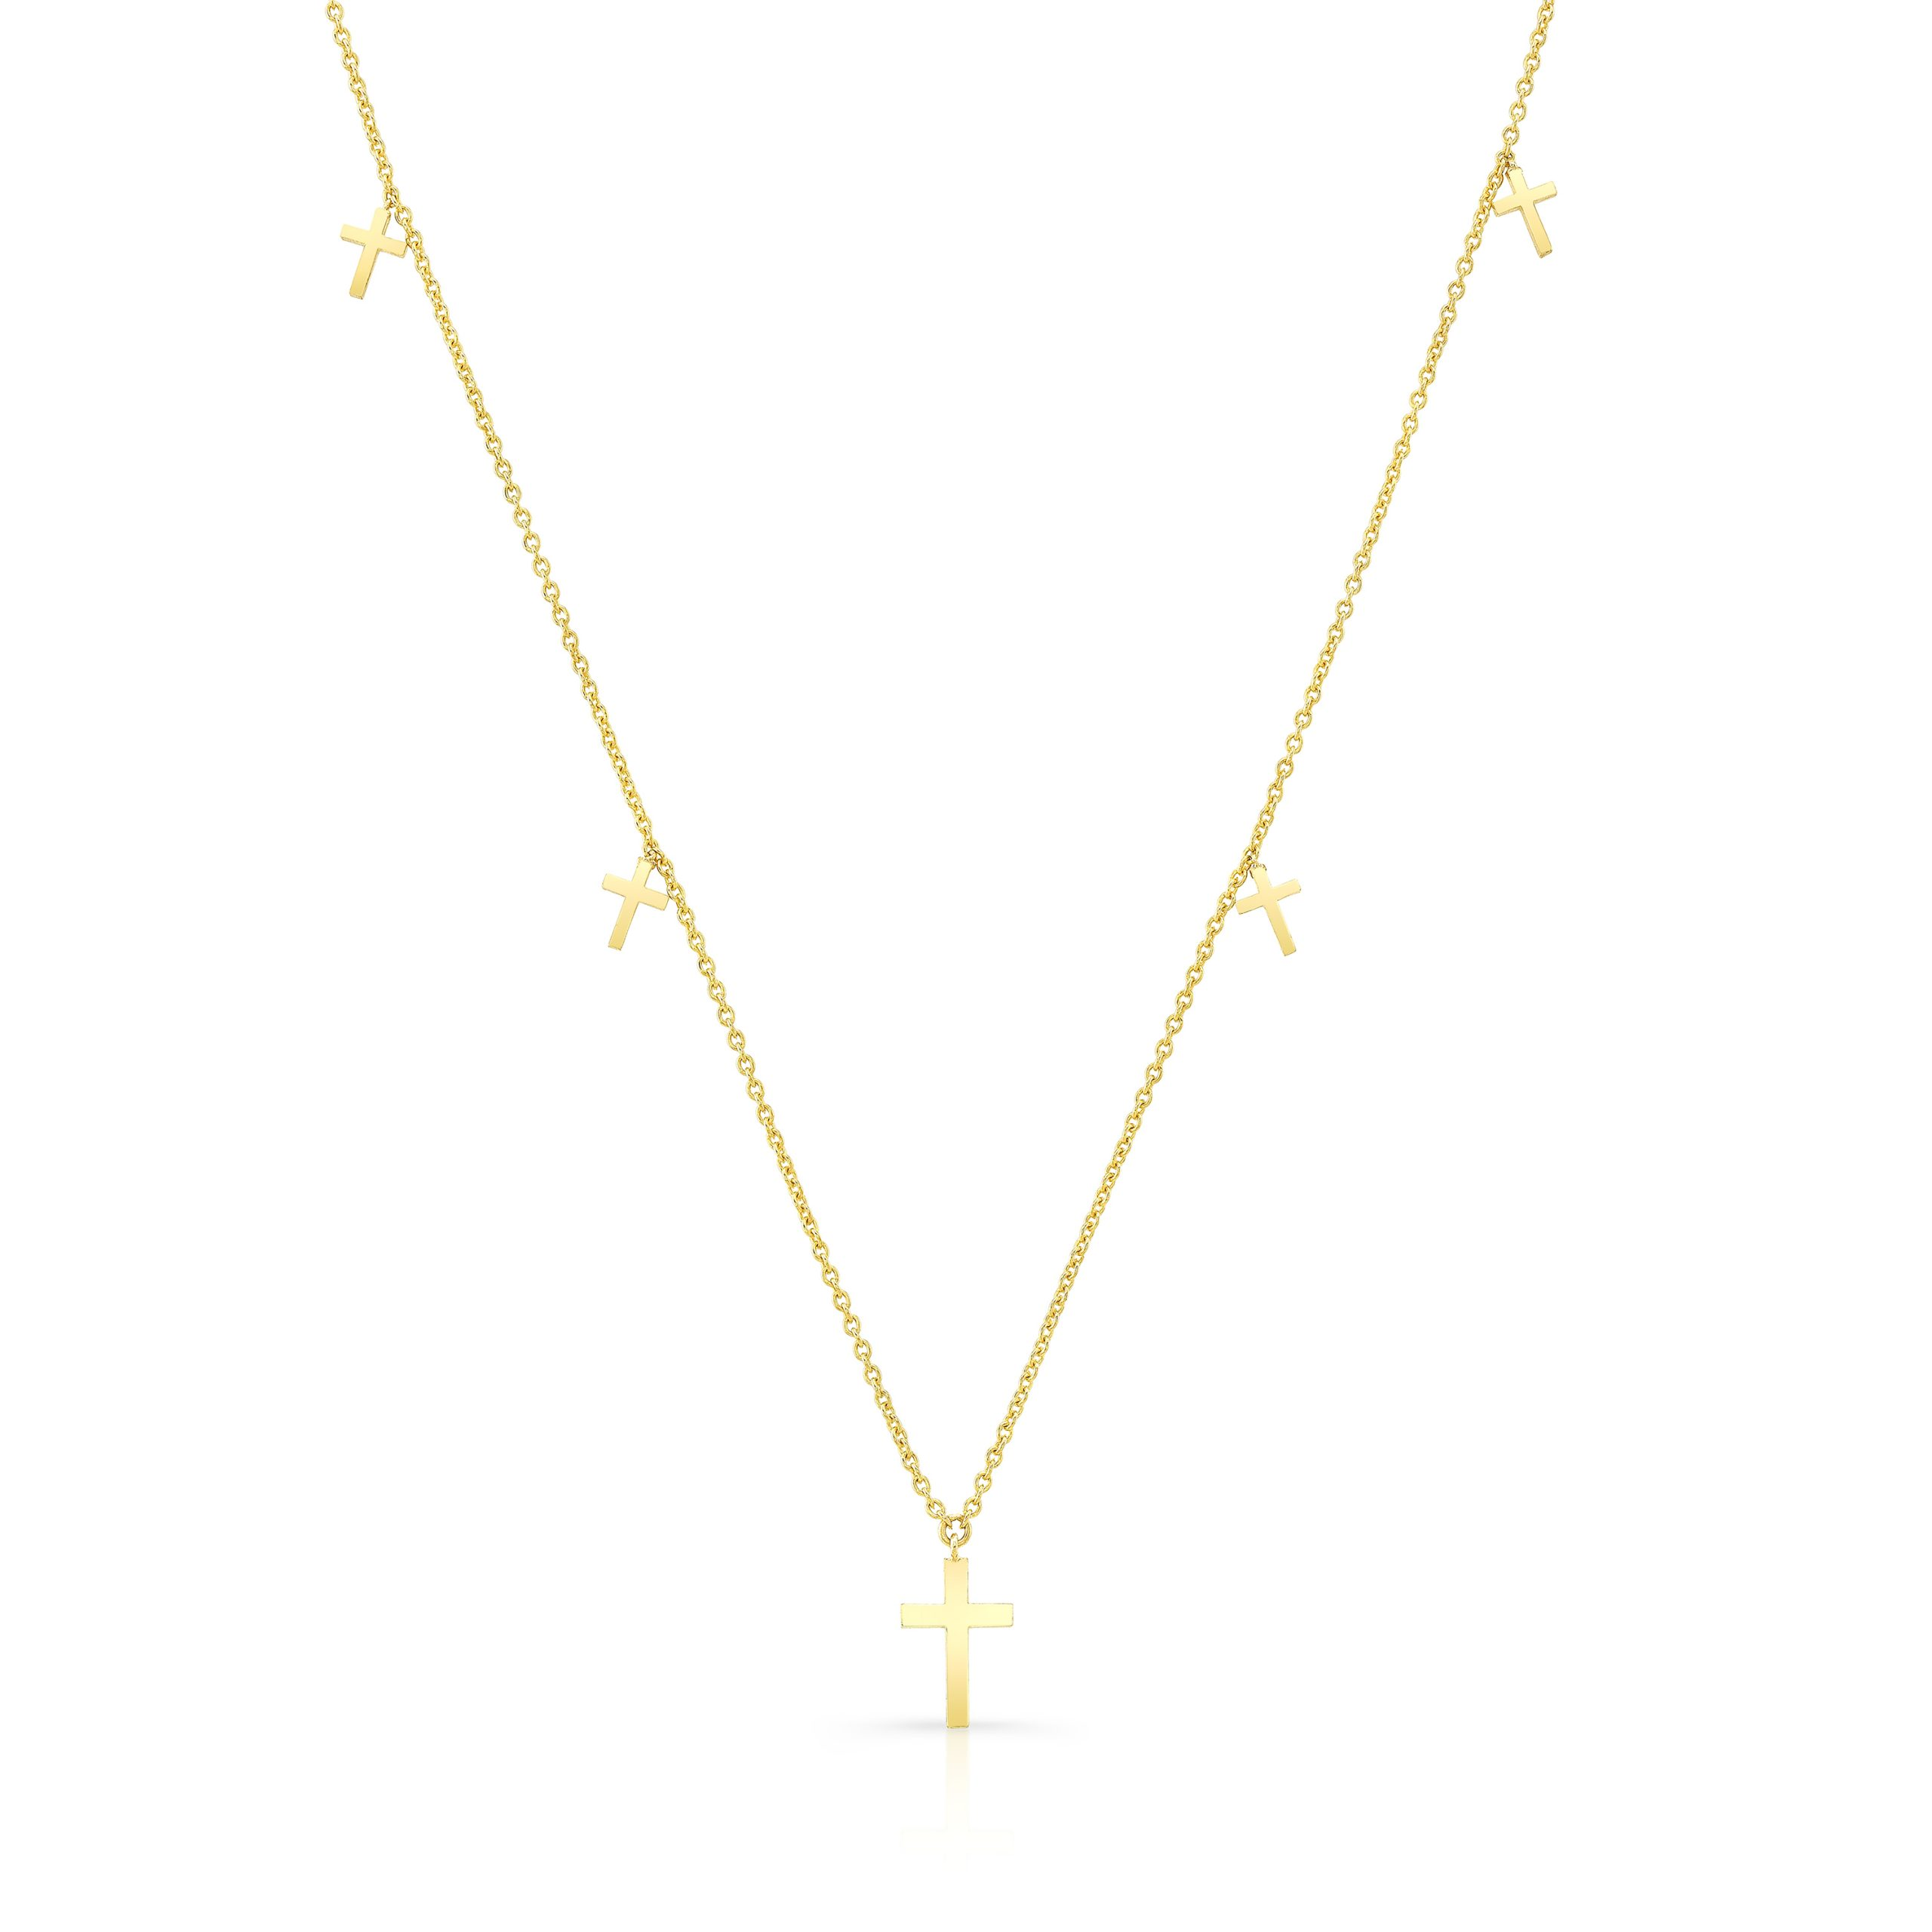 mbjewelers_011221_necklace_with_charms_2